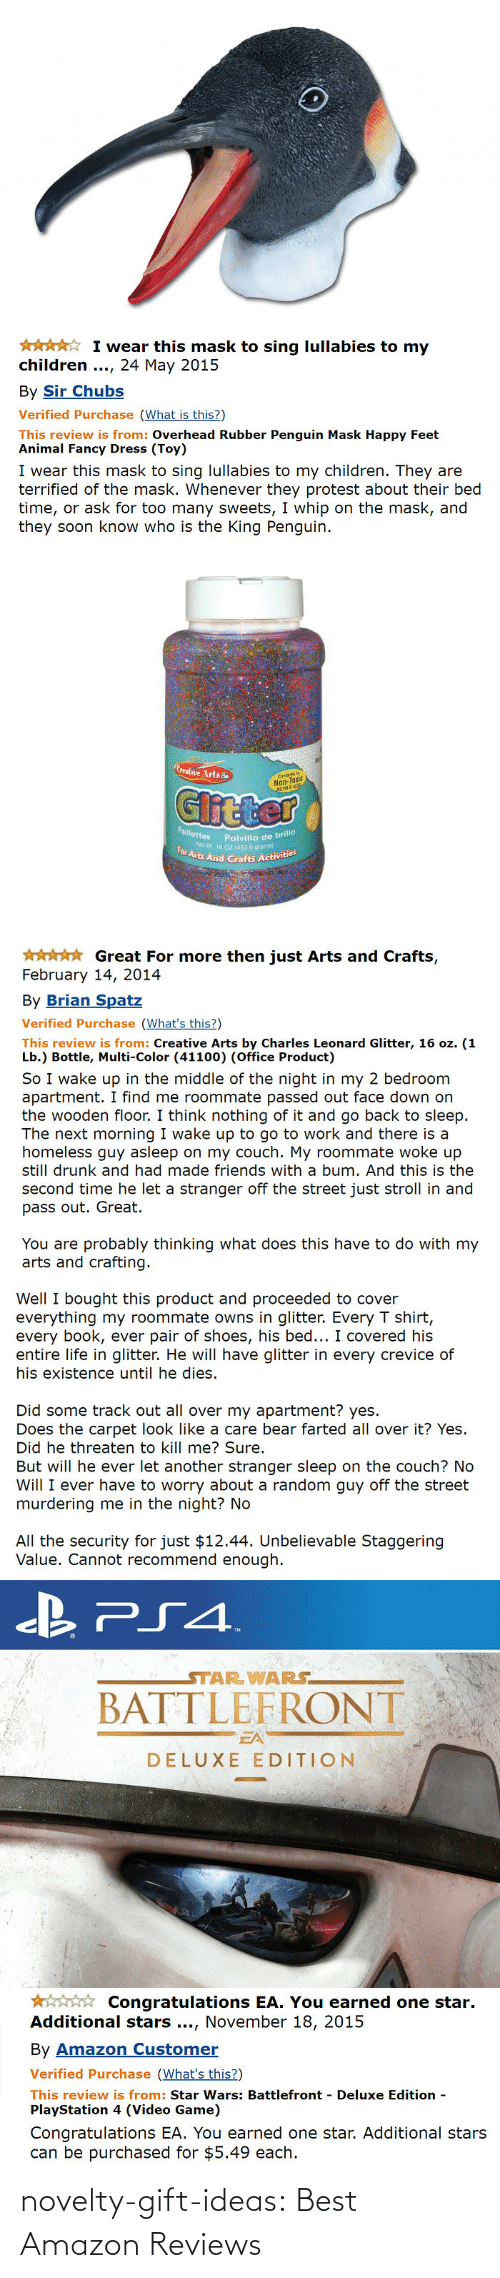 tag: novelty-gift-ideas: Best Amazon Reviews